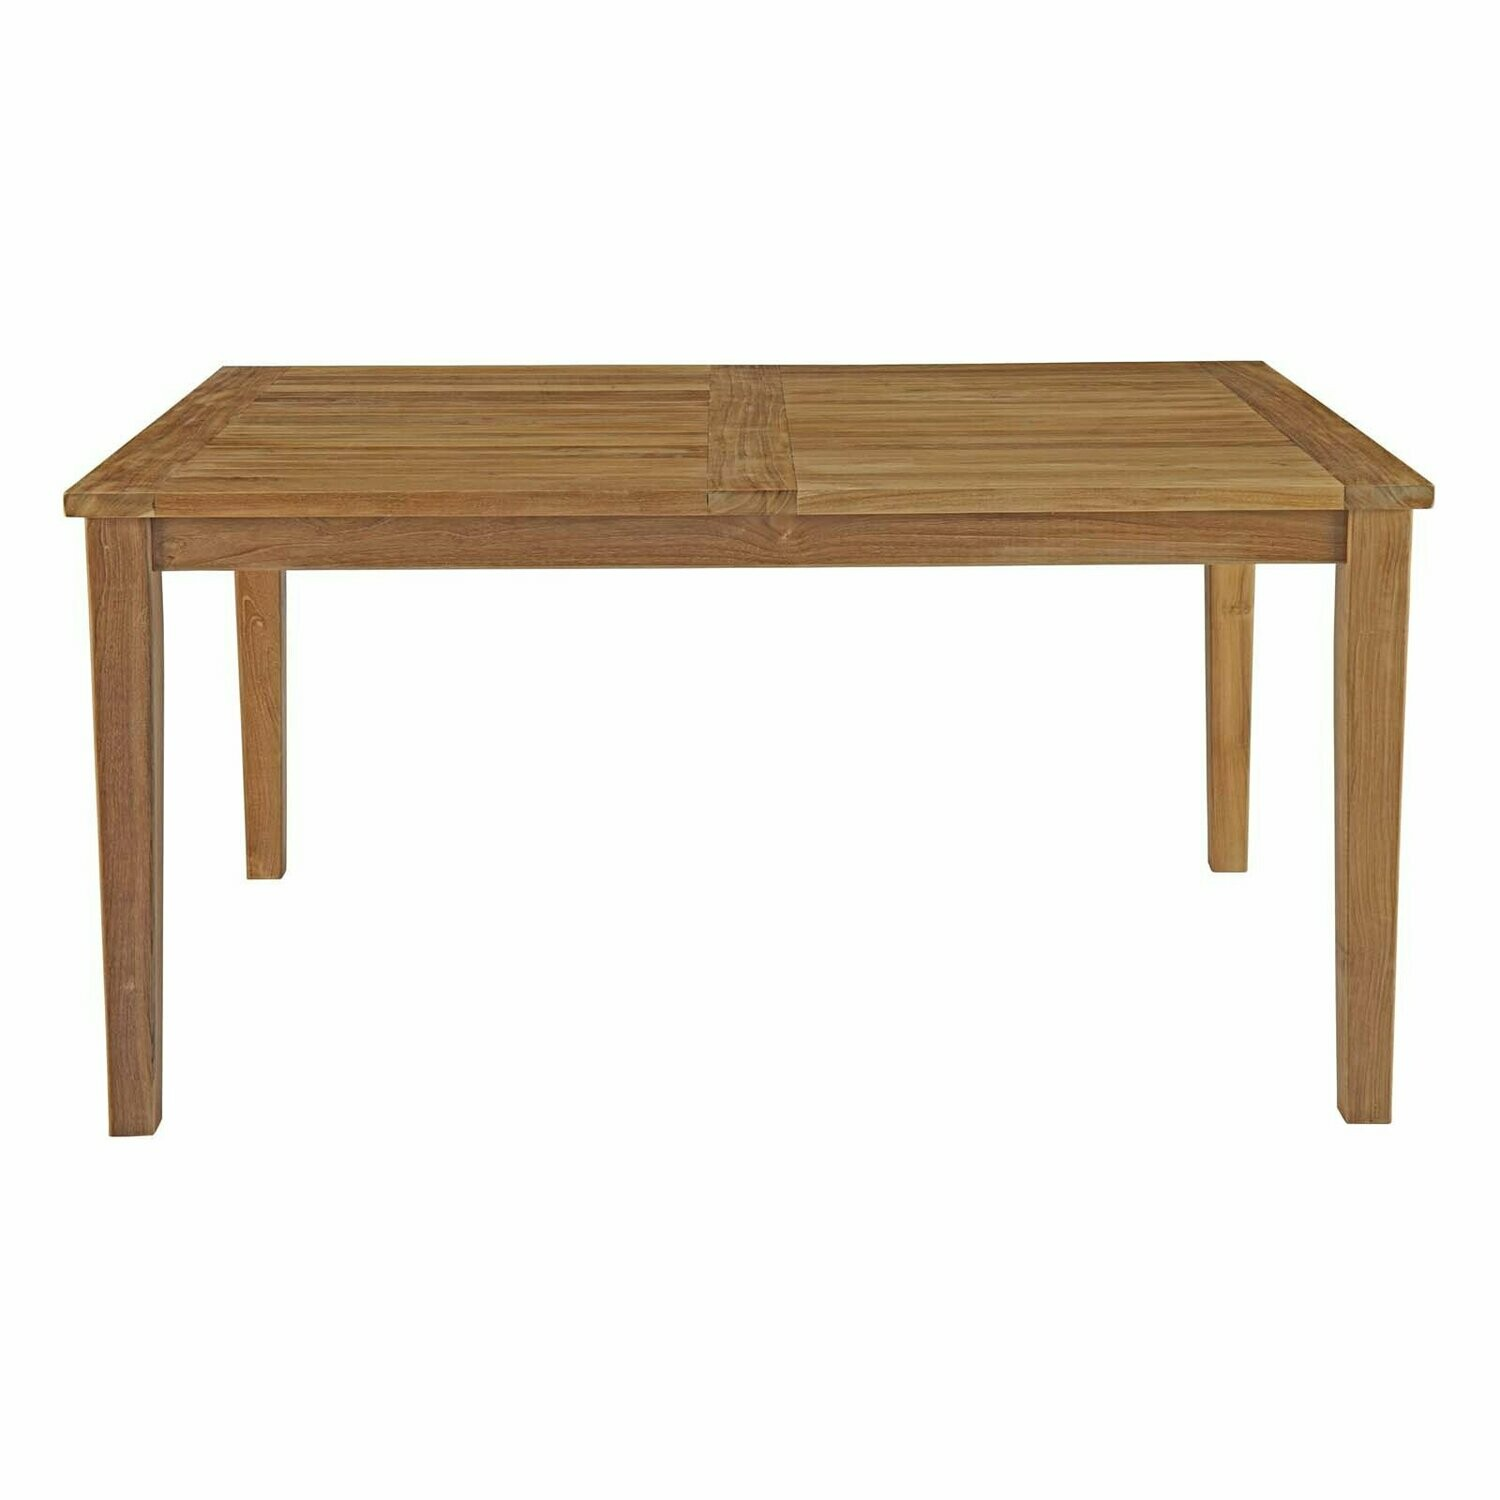 Belmont Harbor Rectangle Dining Table 60""